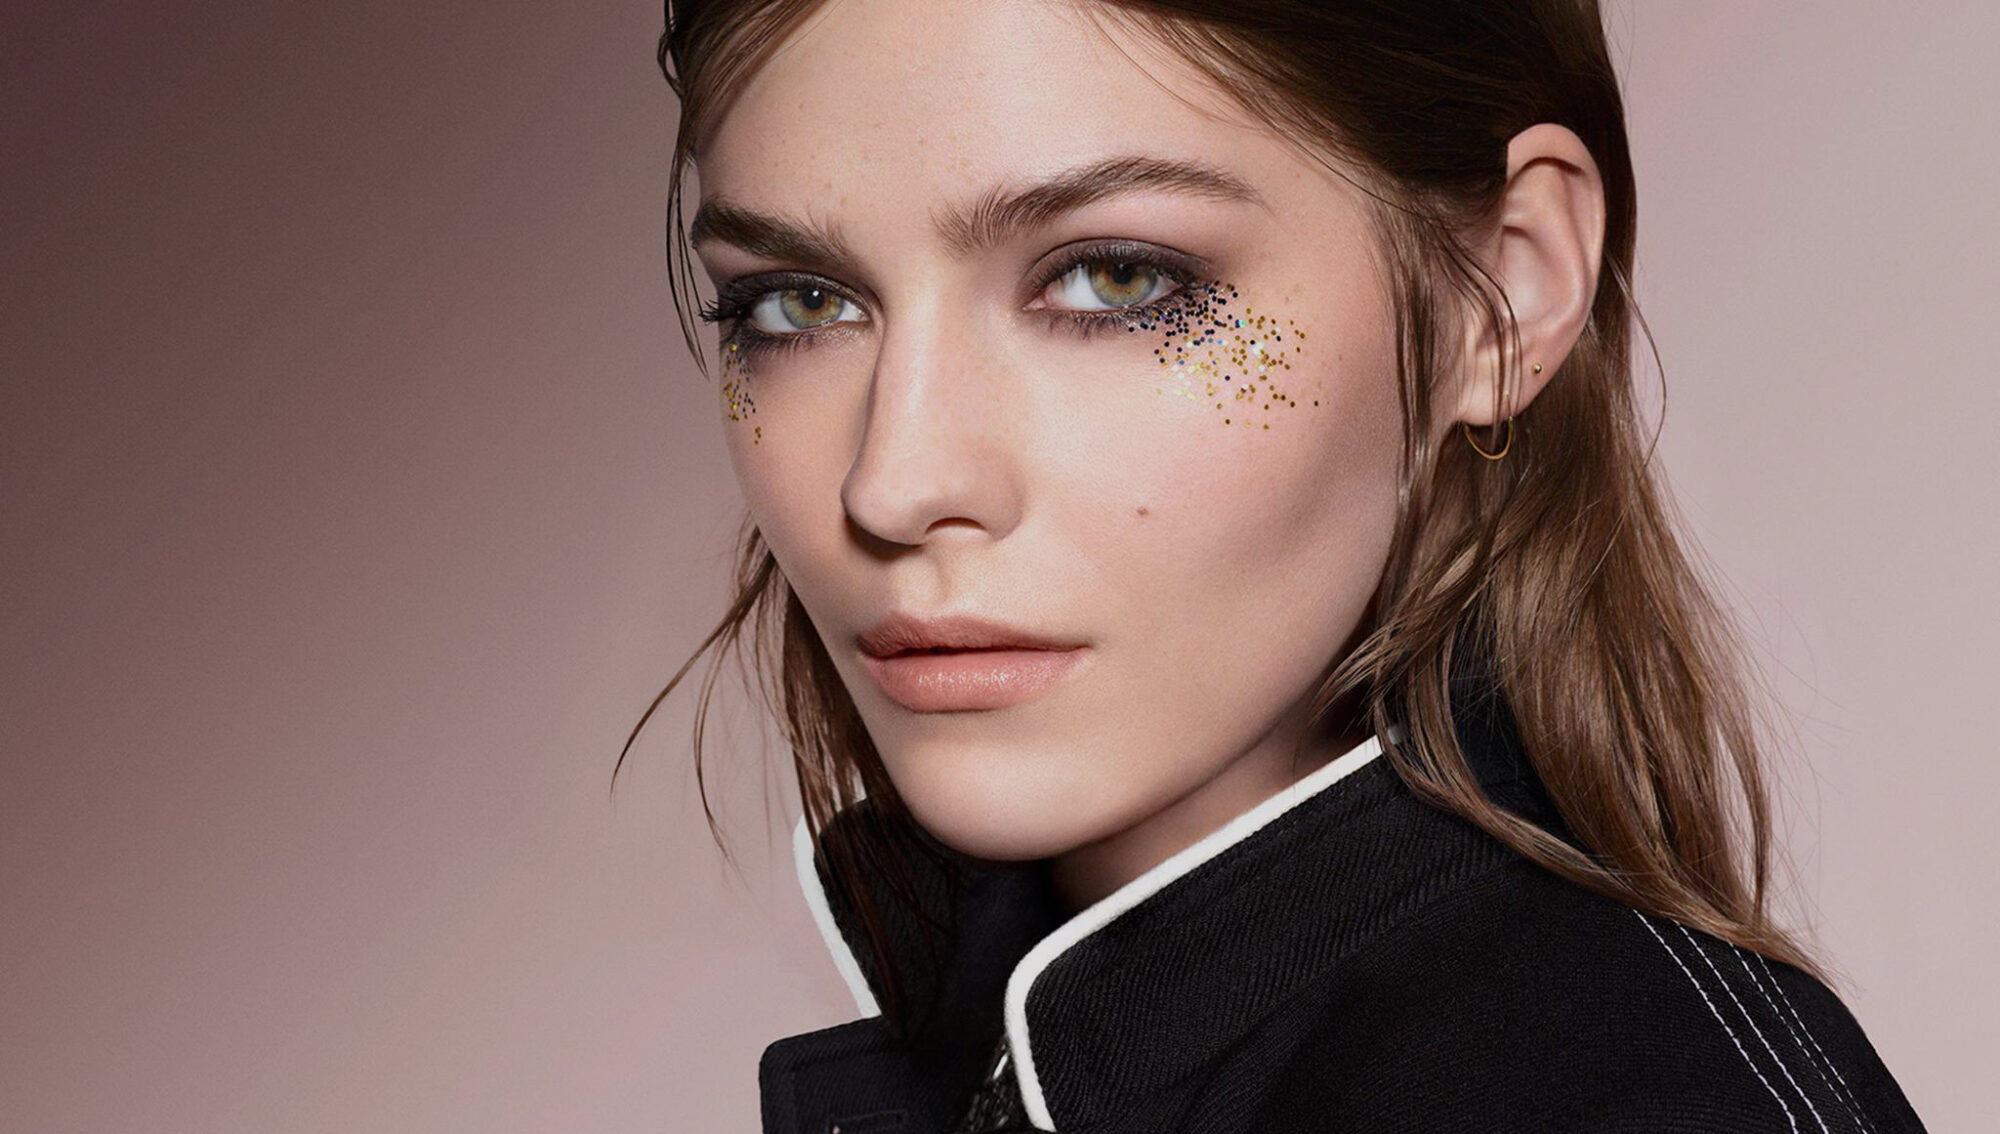 BURBERRY BEAUTY FALL 2016 RUNWAY COLLECTION FILM